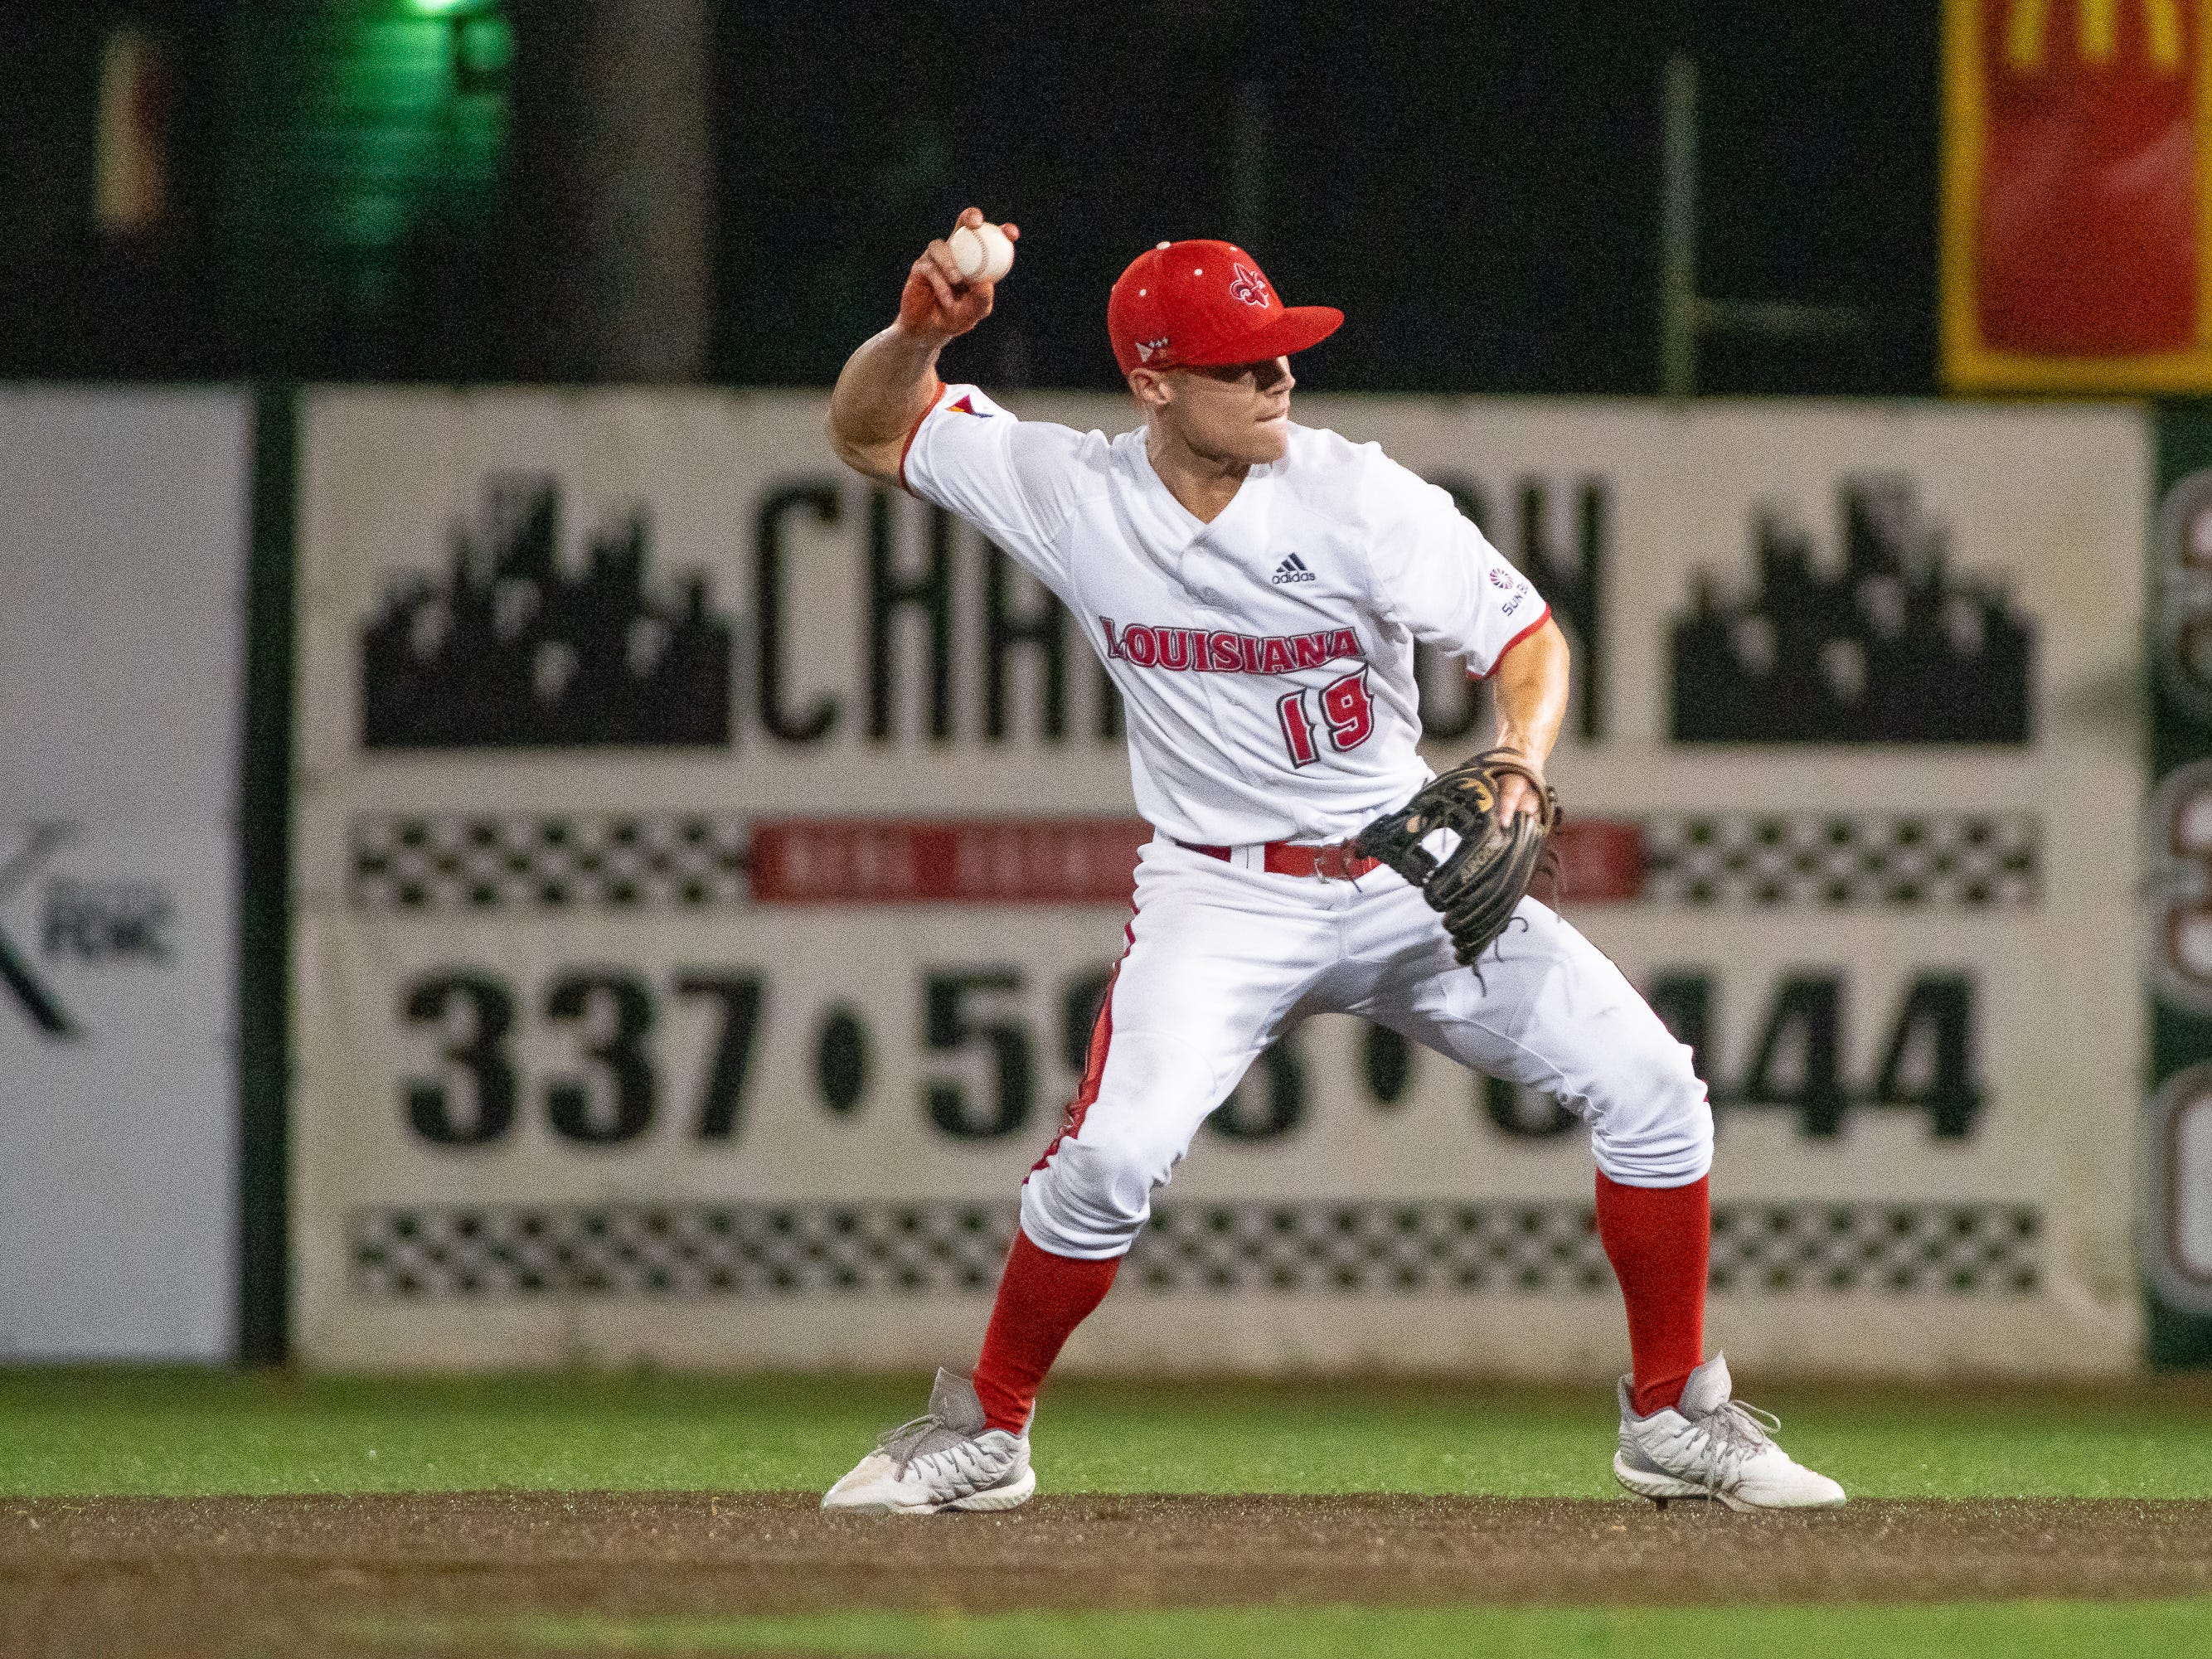 """UL's Hunter Kasuls throws the ball to first base as the Ragin' Cajuns take on the Southern Miss Golden Eagles at M.L. """"Tigue"""" Moore Field on Wednesday, March 13, 2019."""